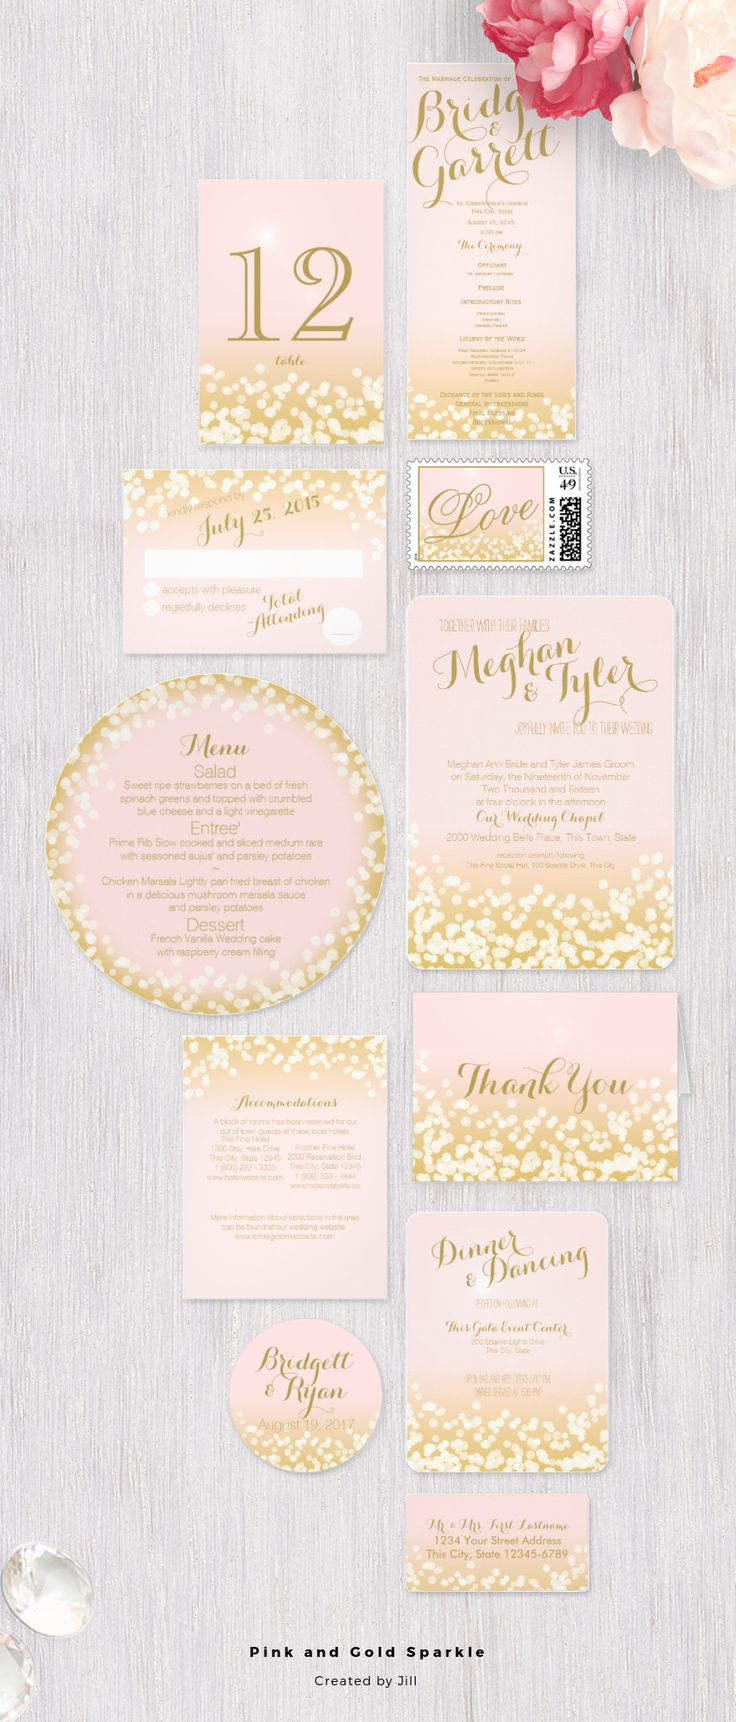 Pink and gold sparkle light effect wedding invitation design suite | RSVP, Save the date, Menu, postage